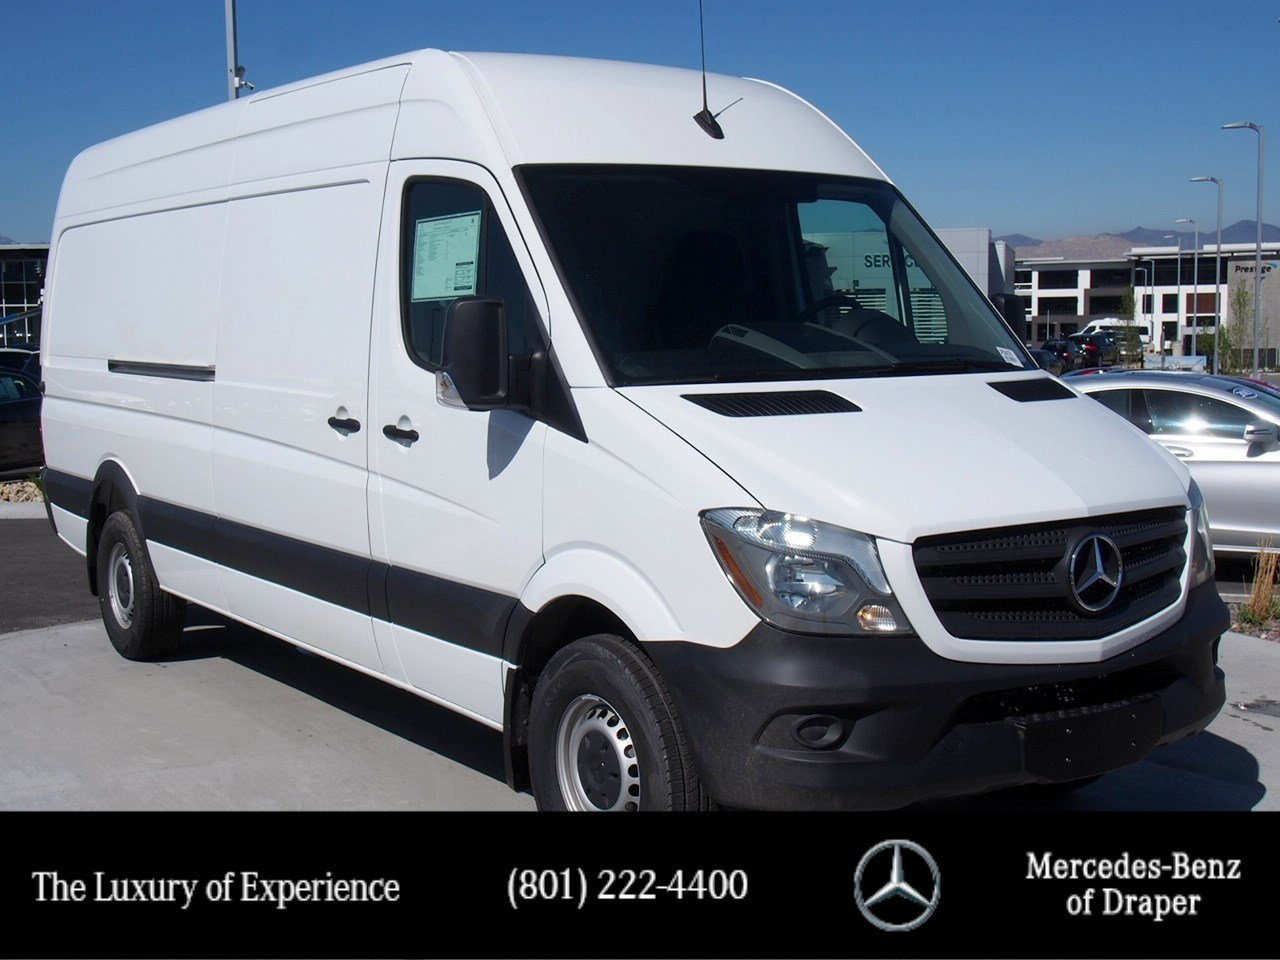 for vans executive van oh sprinter montgomery work dayton in car used cargo available beavercreek sale mercedes vandalia kettering benz